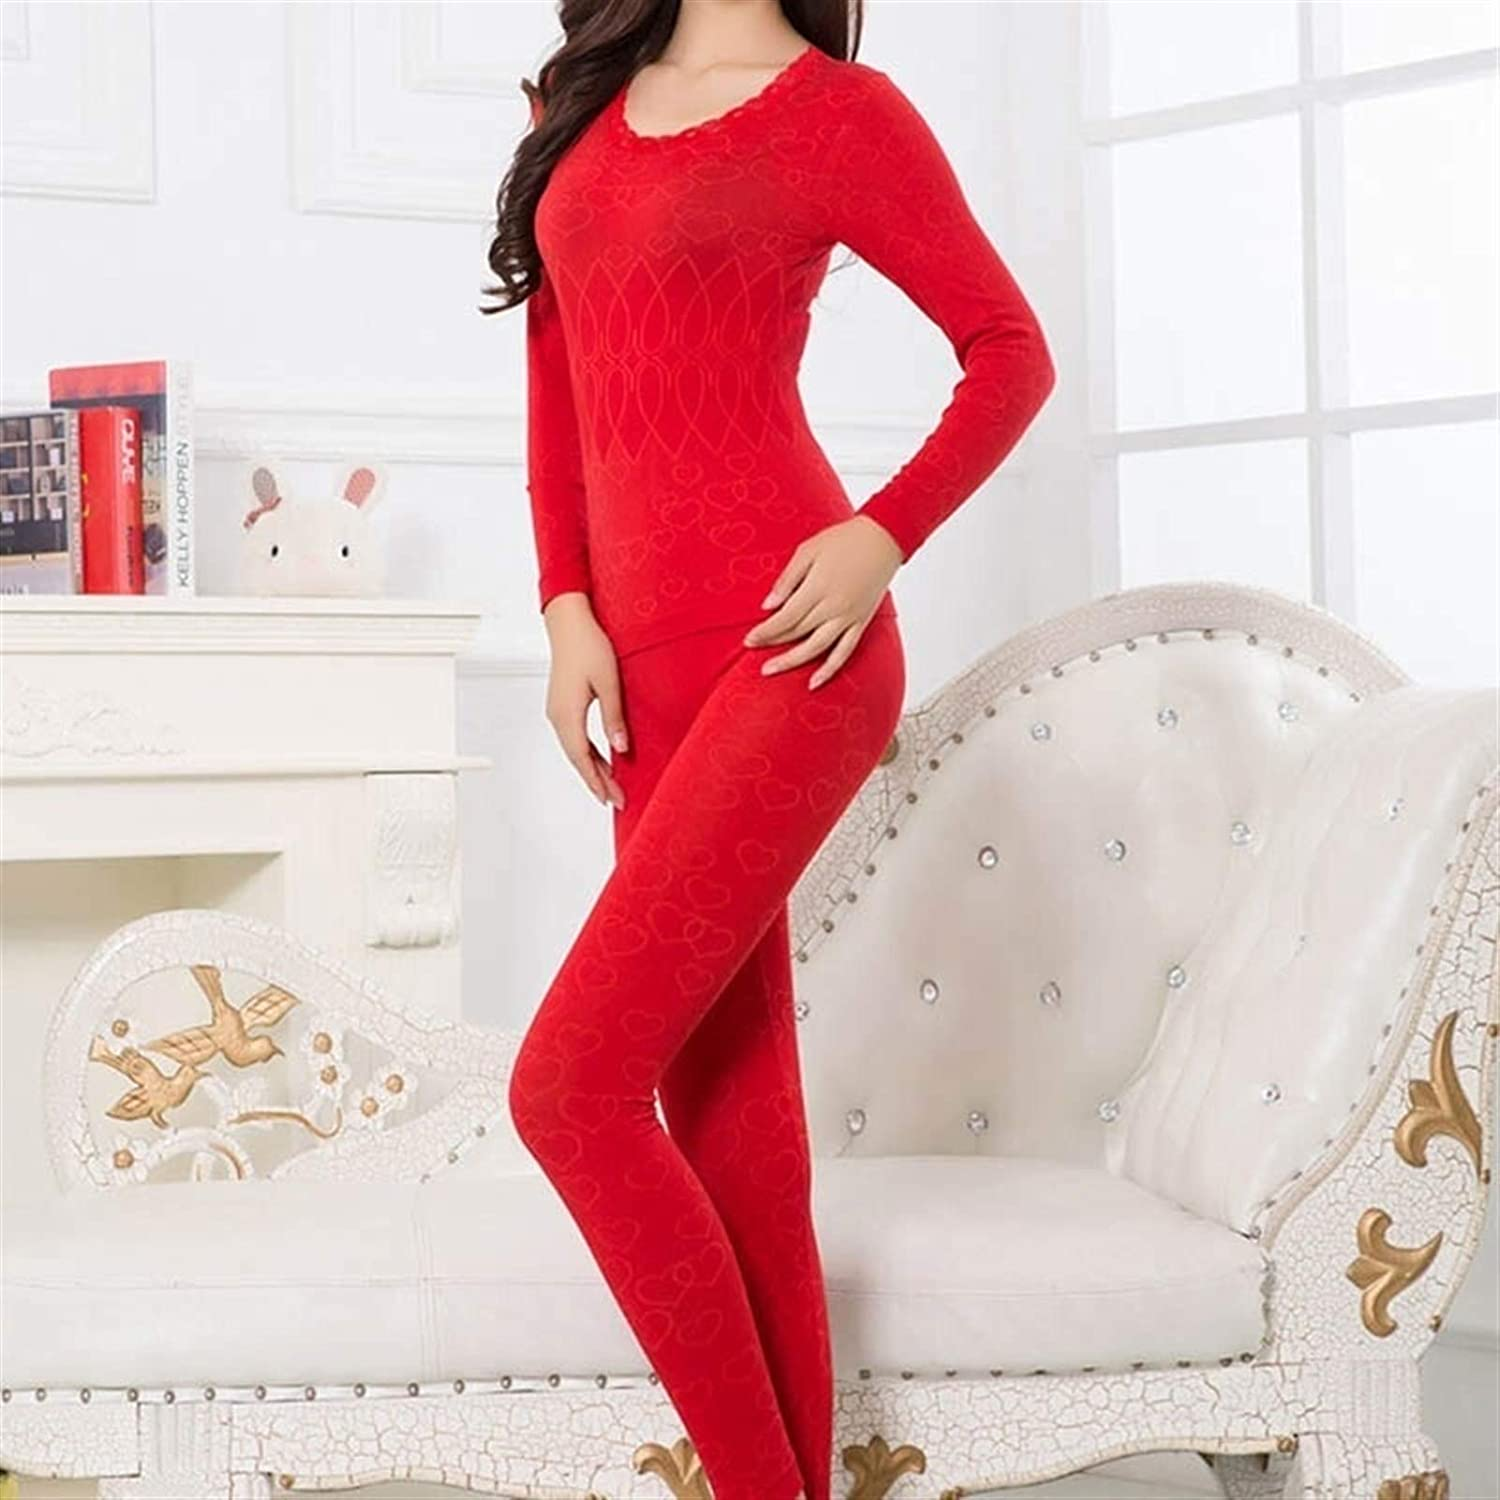 DZHT Women Warm Thermal Underwear Woman Long Sleeve Thermal Clothing Underwears Sets (Color : Red, Size : One Size)